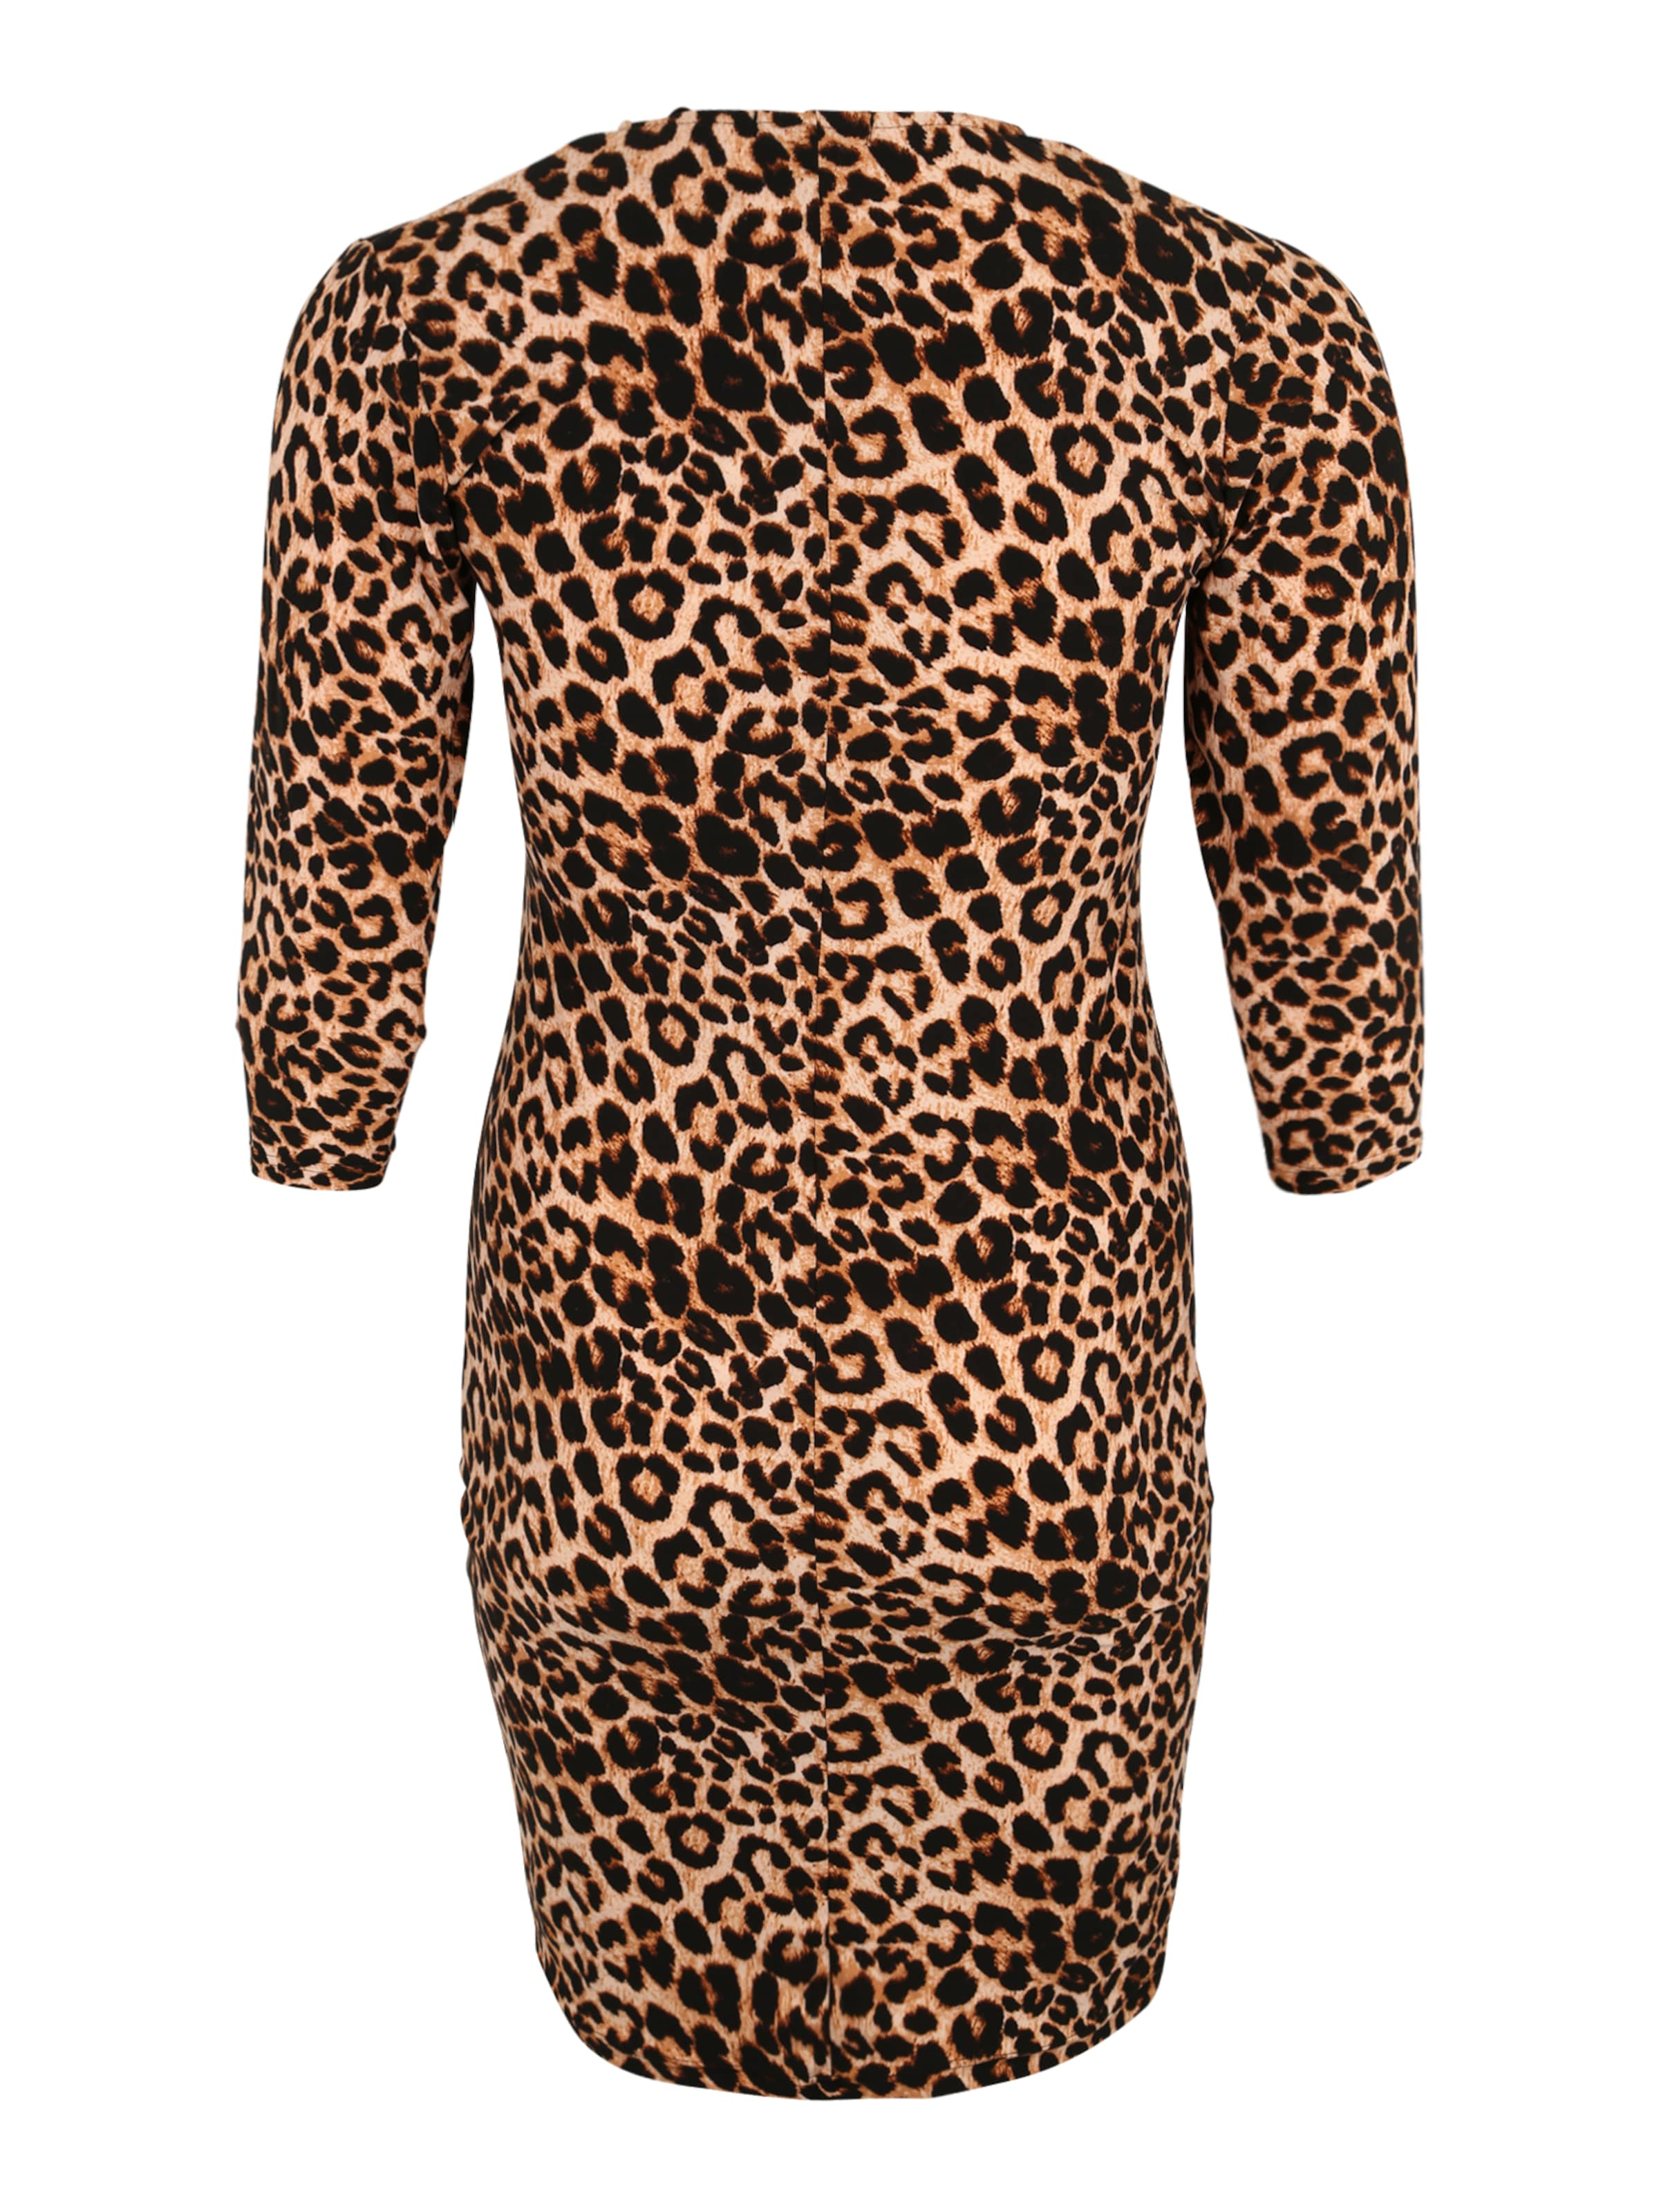 Look Anaimal 'x Bodycon' Curves In New St BraunGelb Kleid 4AL53jR